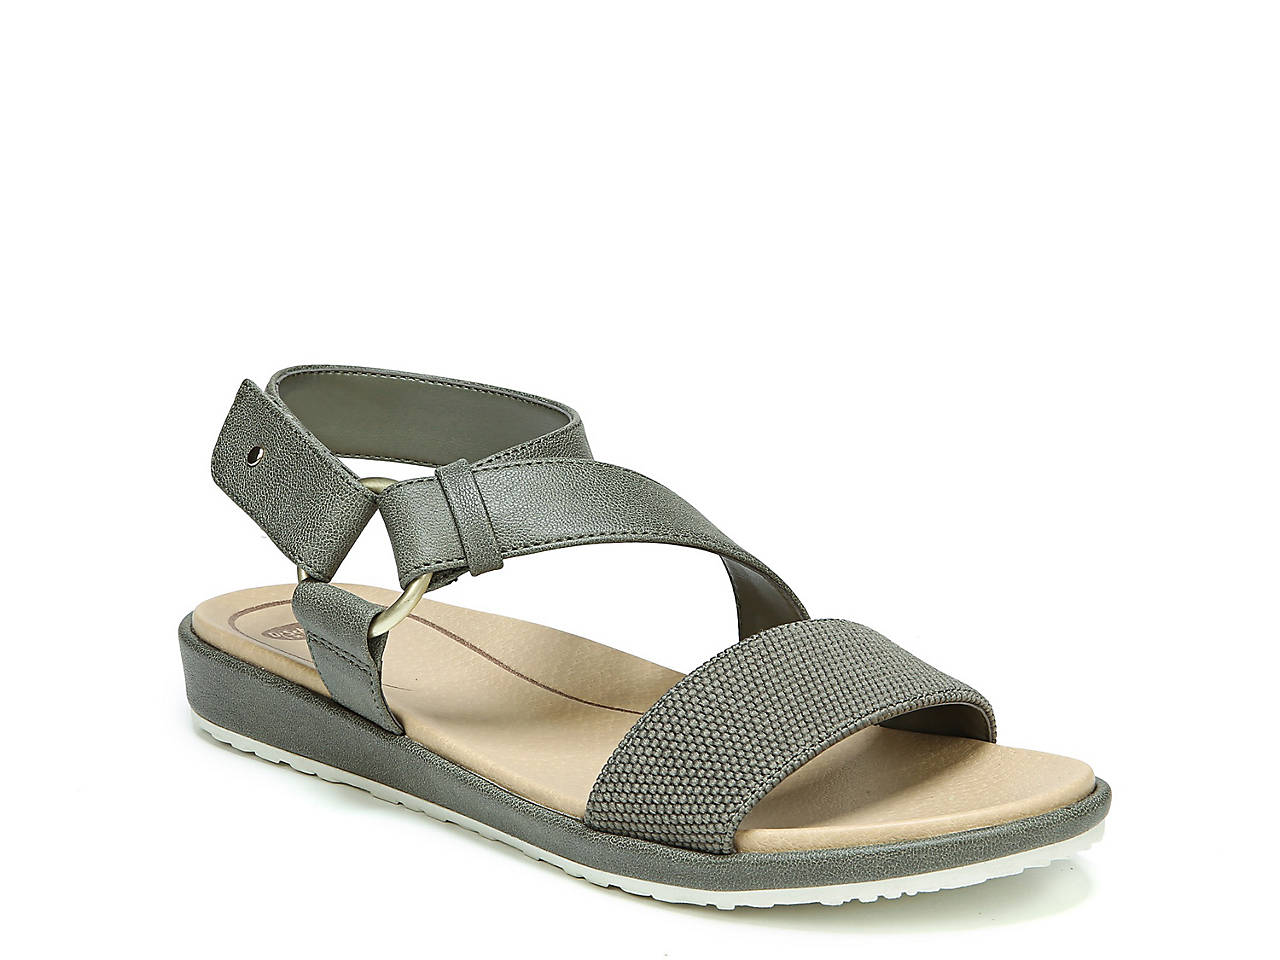 Dr. Scholl's Powers Sandals Women's Shoes